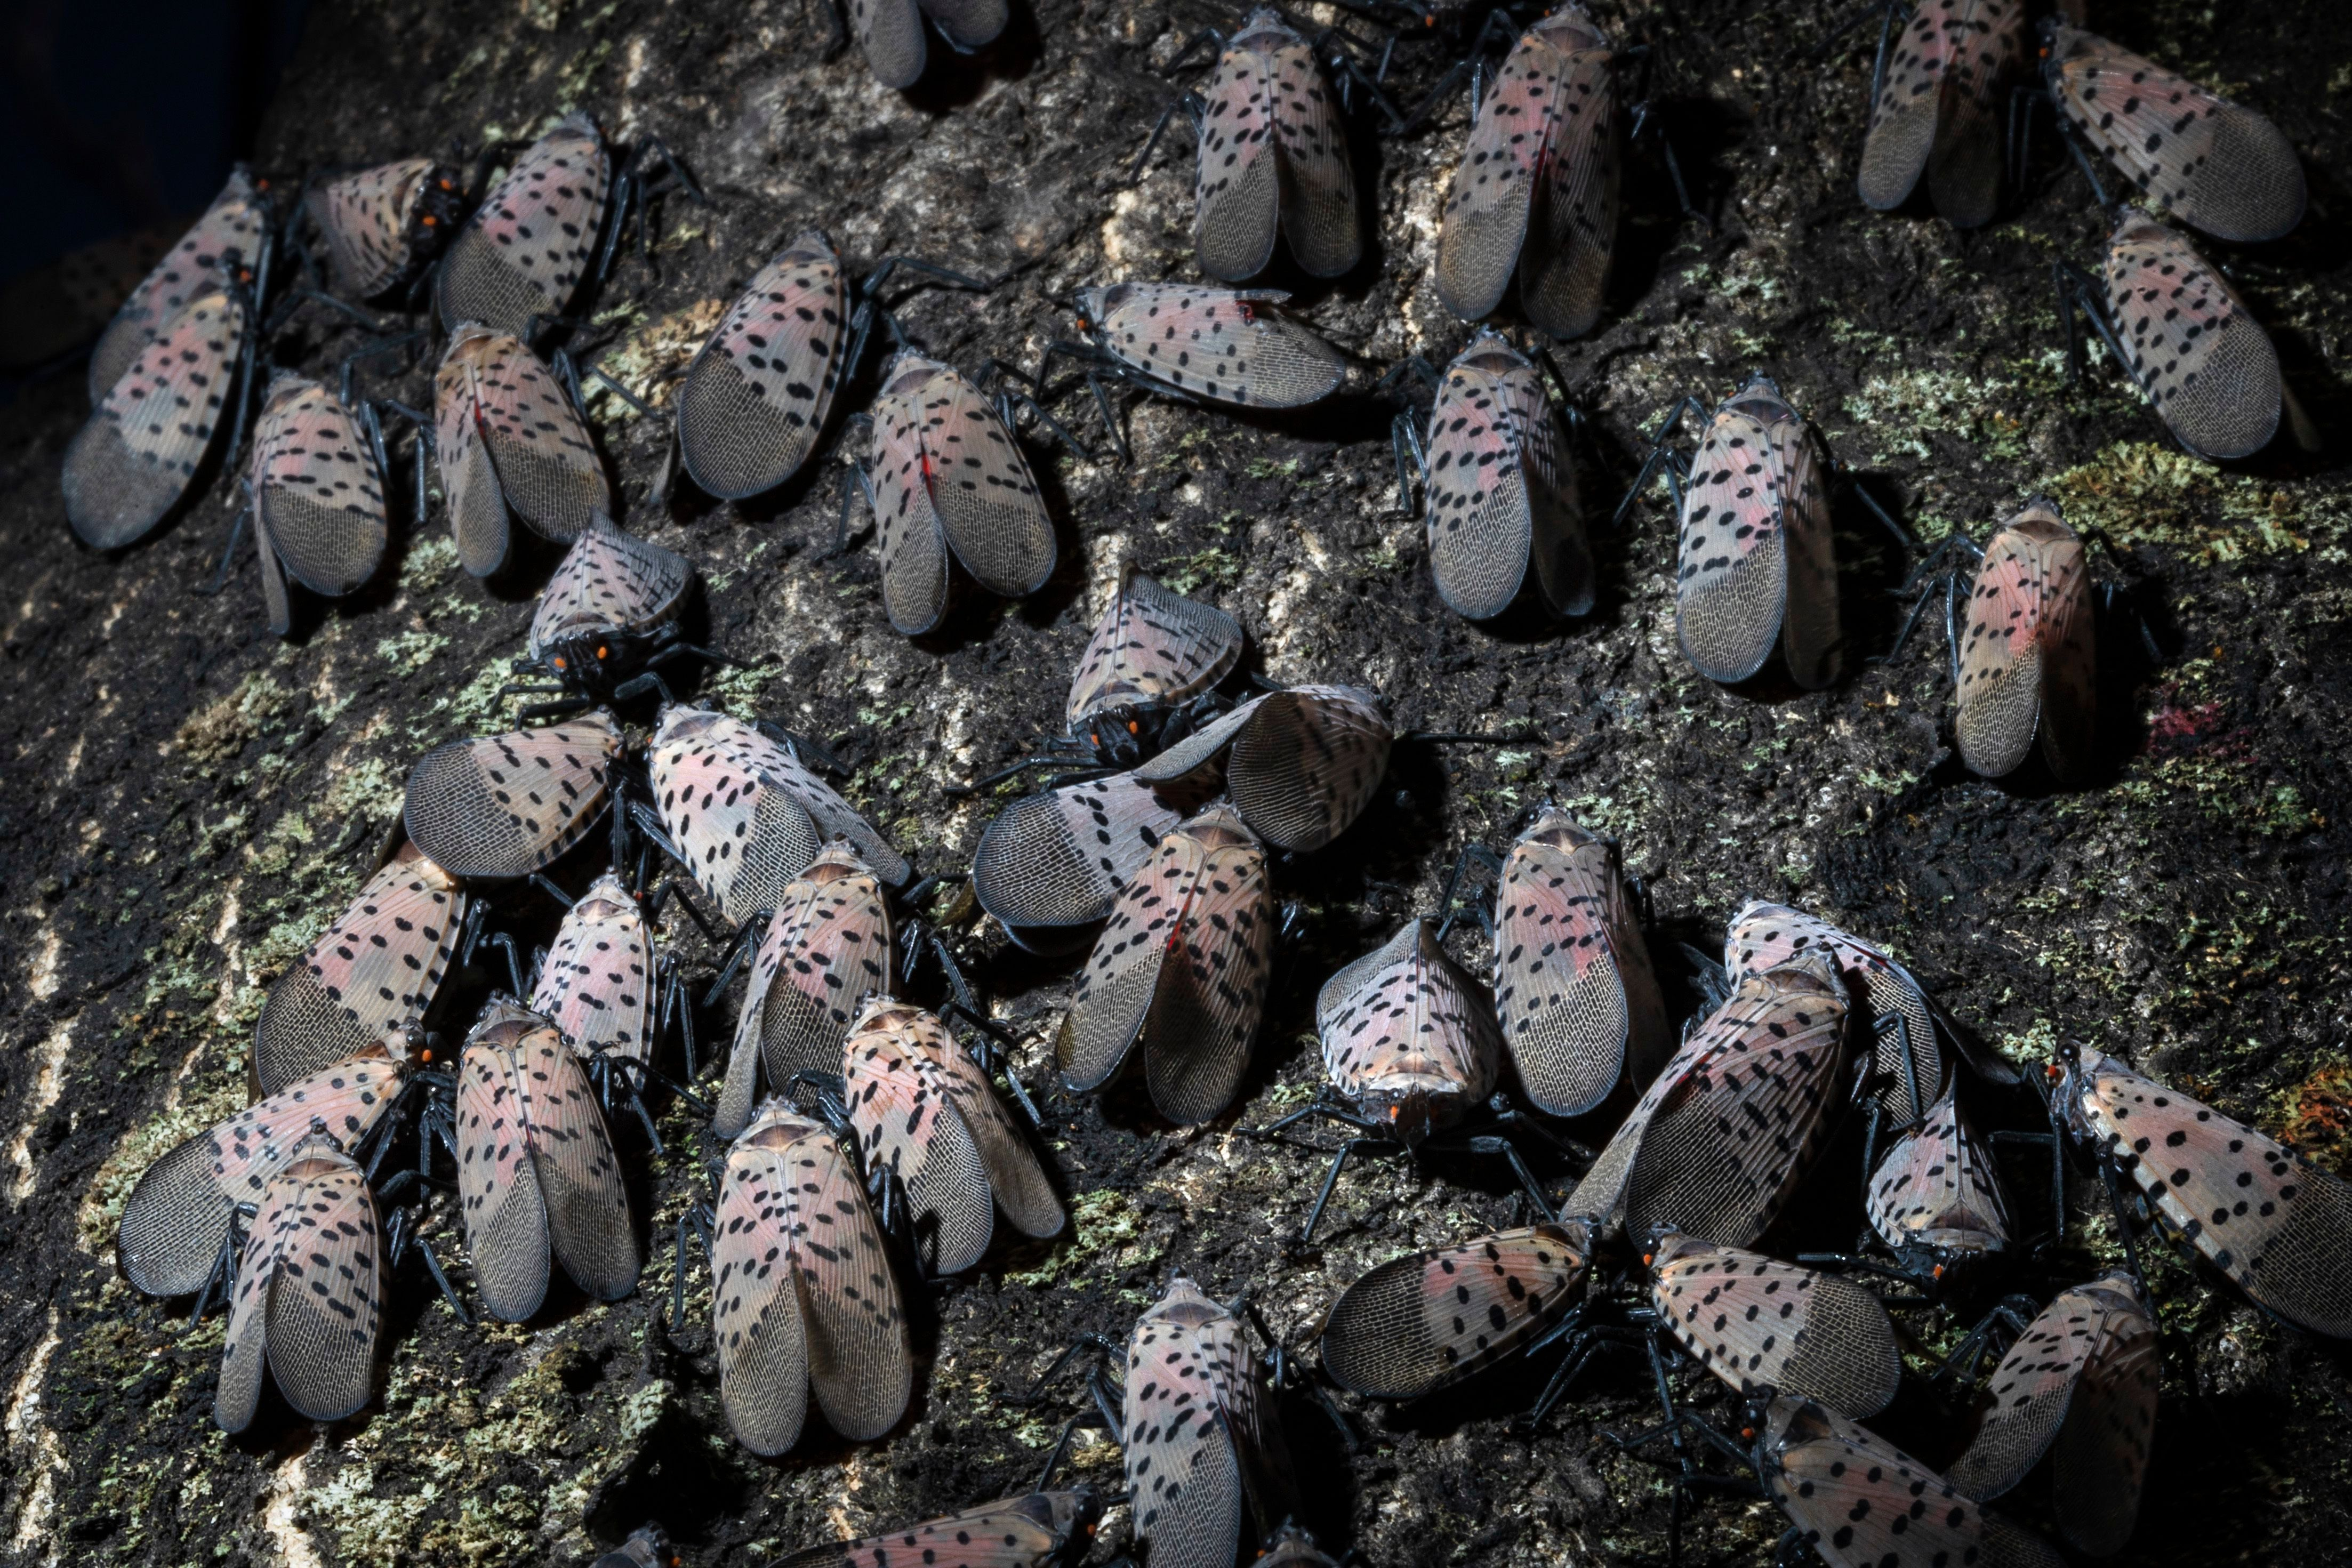 A gathering of spotted lanternflies on a tree.